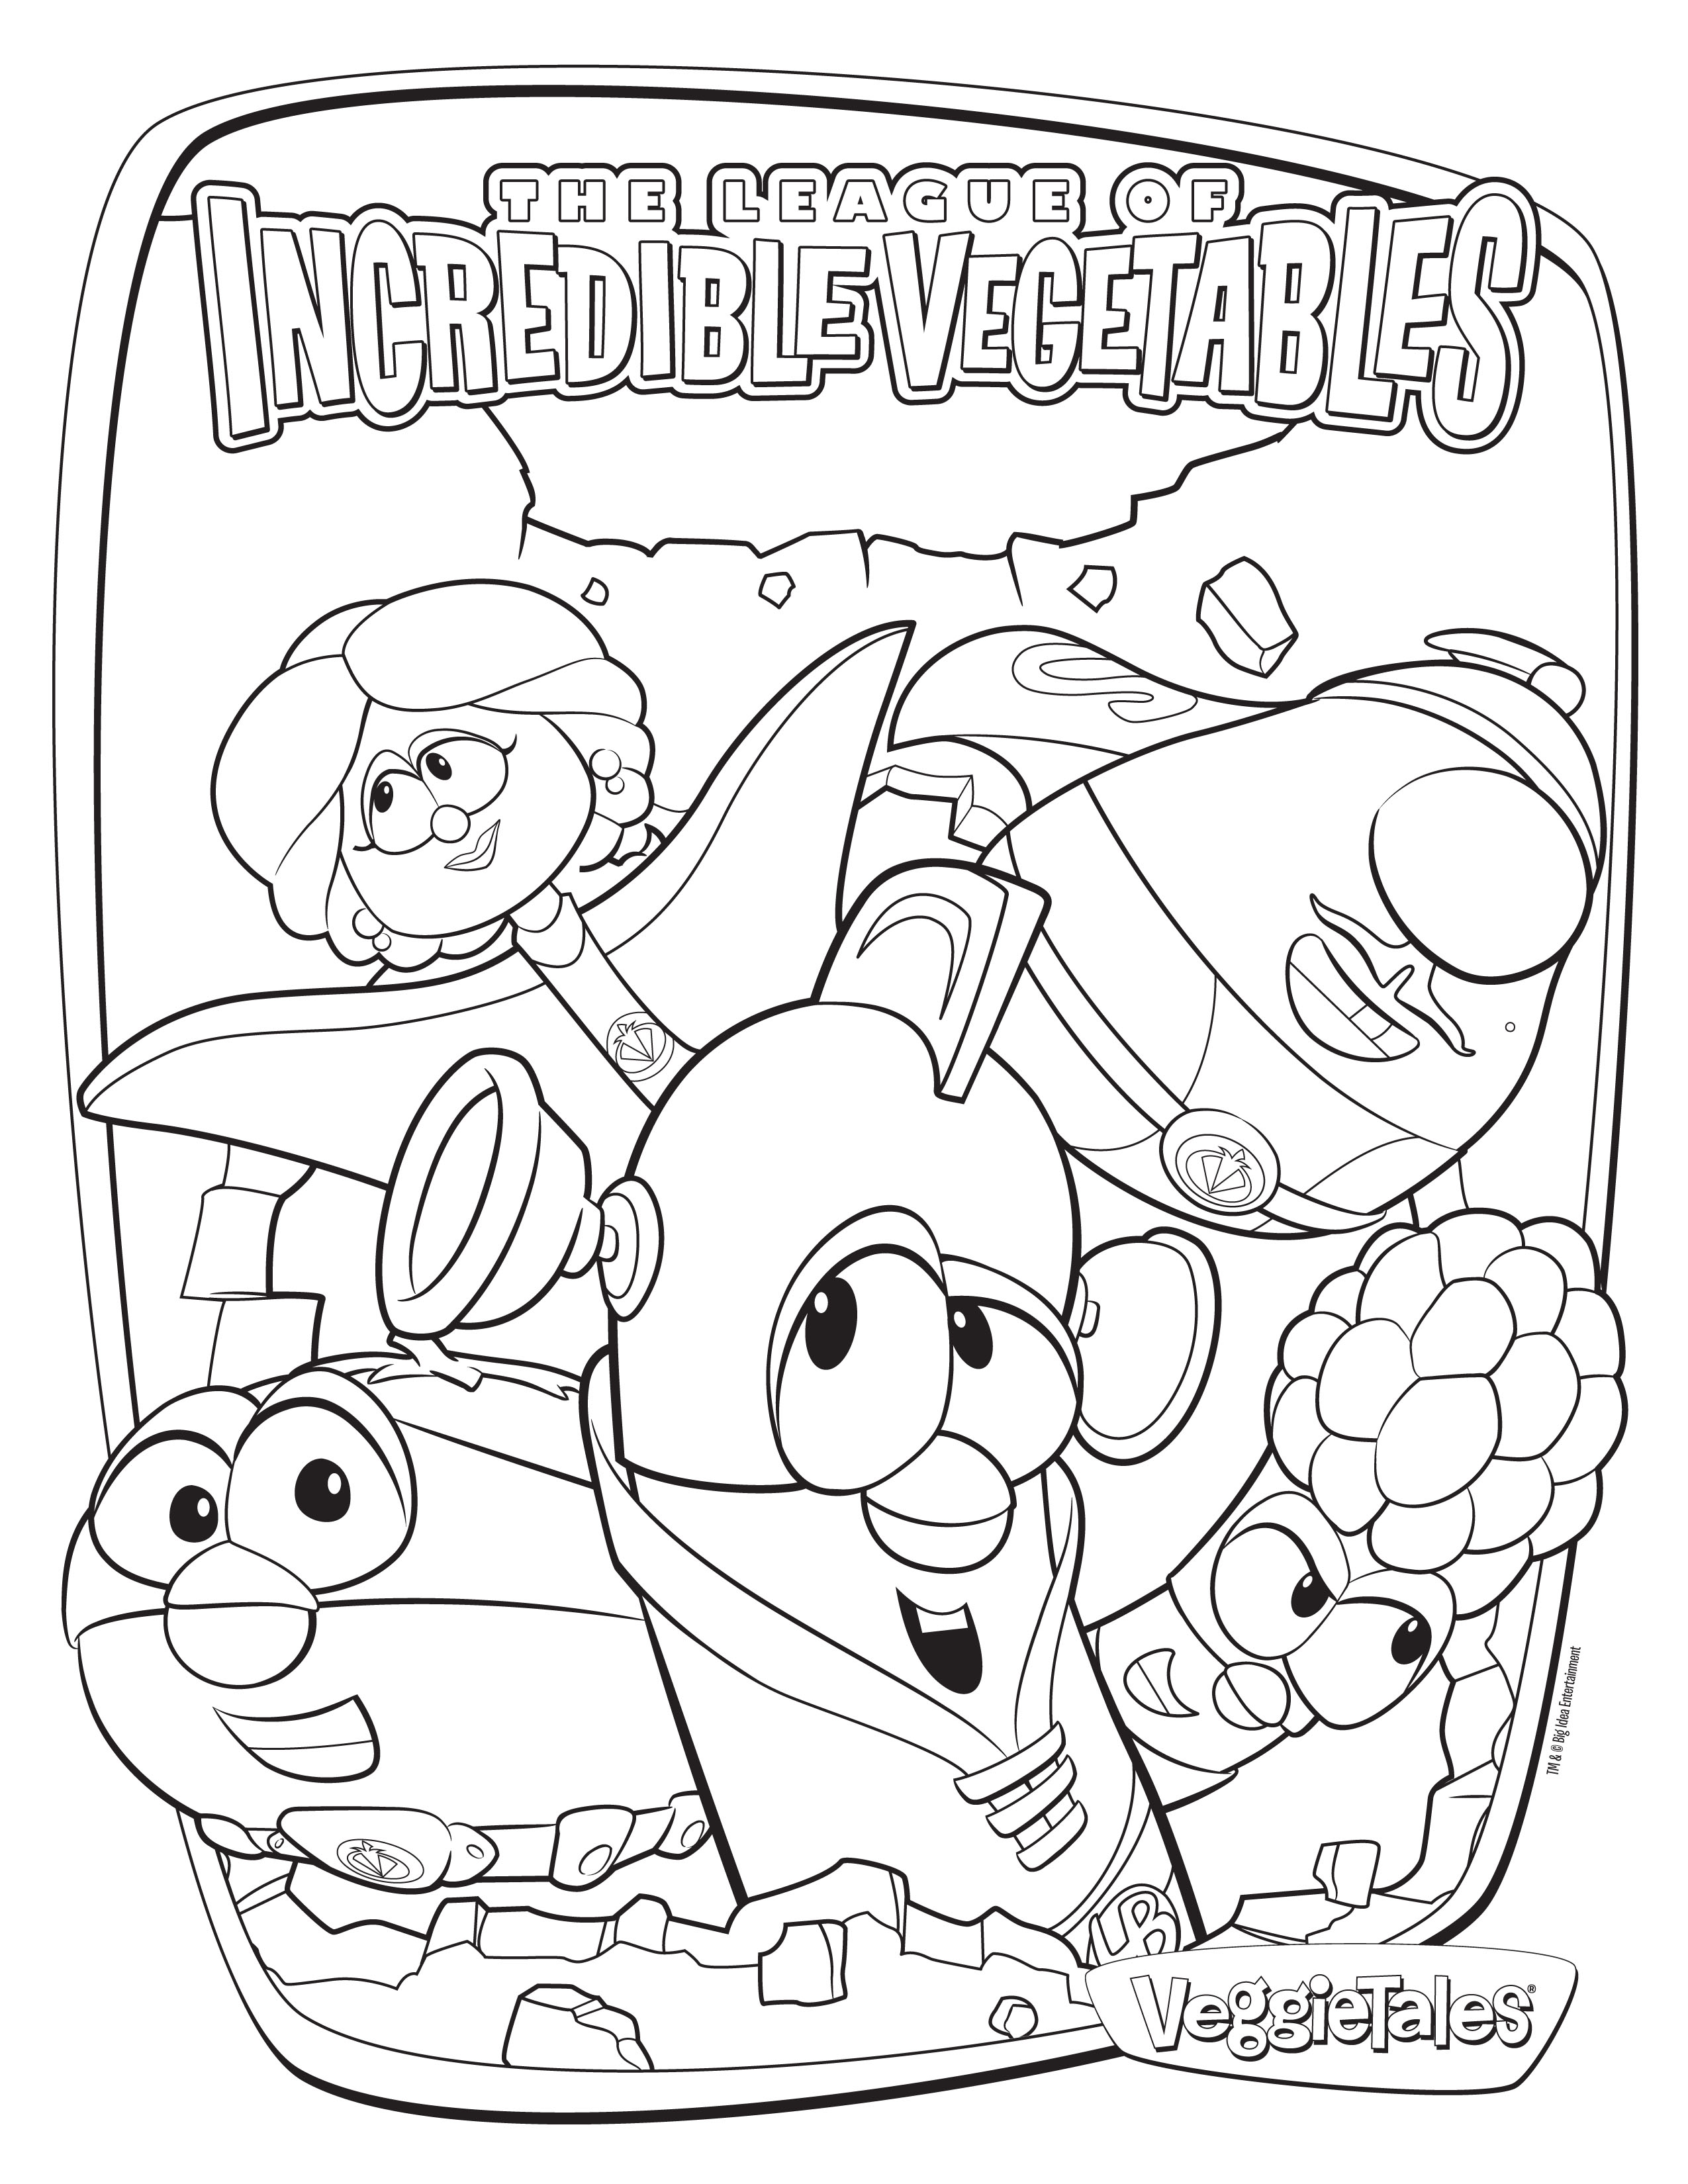 Free Printable Spaceship Coloring Pages For Kids | 3300x2550